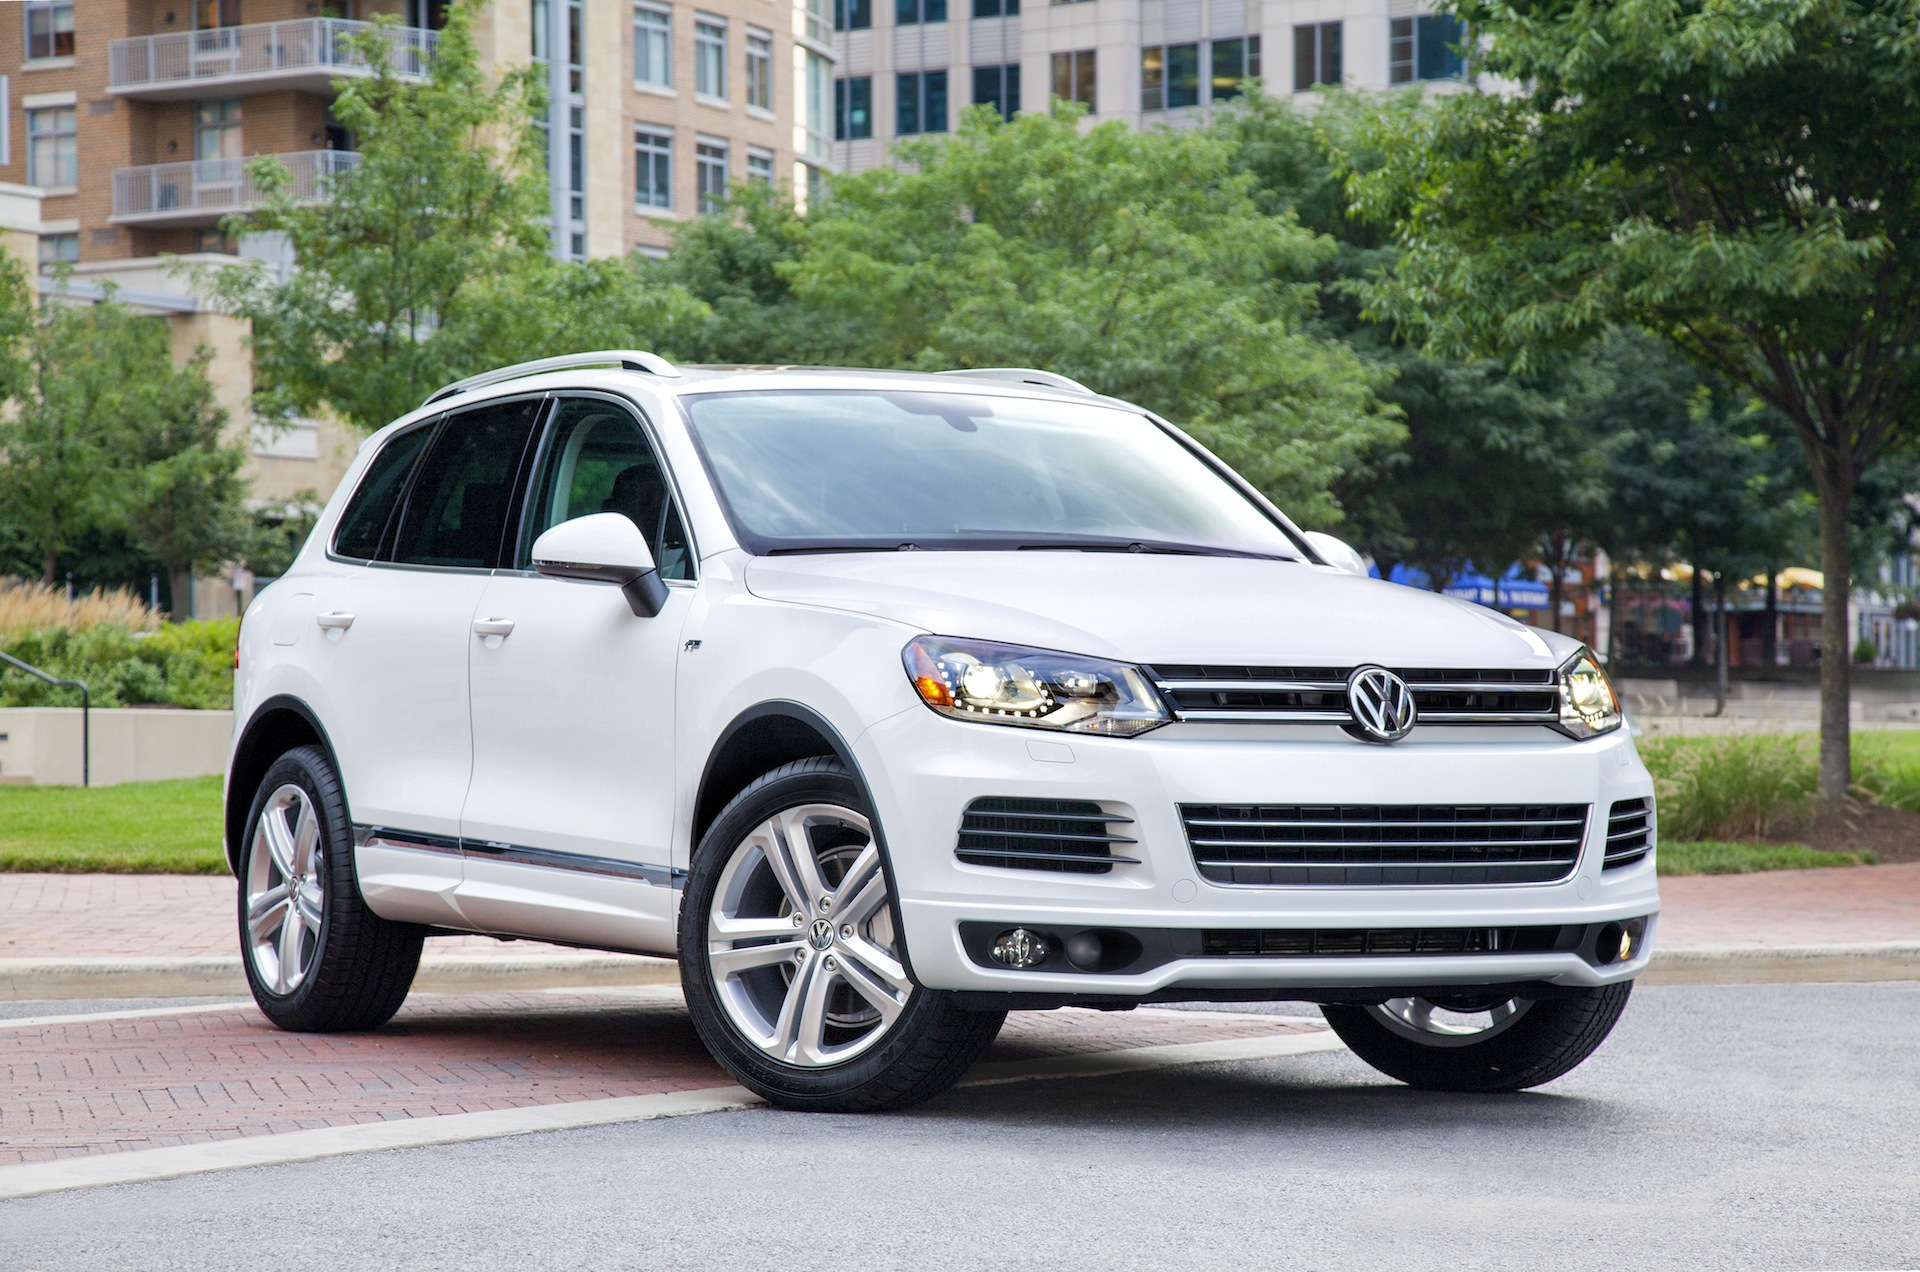 2014 Volkswagen Touareg (VW) Review, Ratings, Specs ...